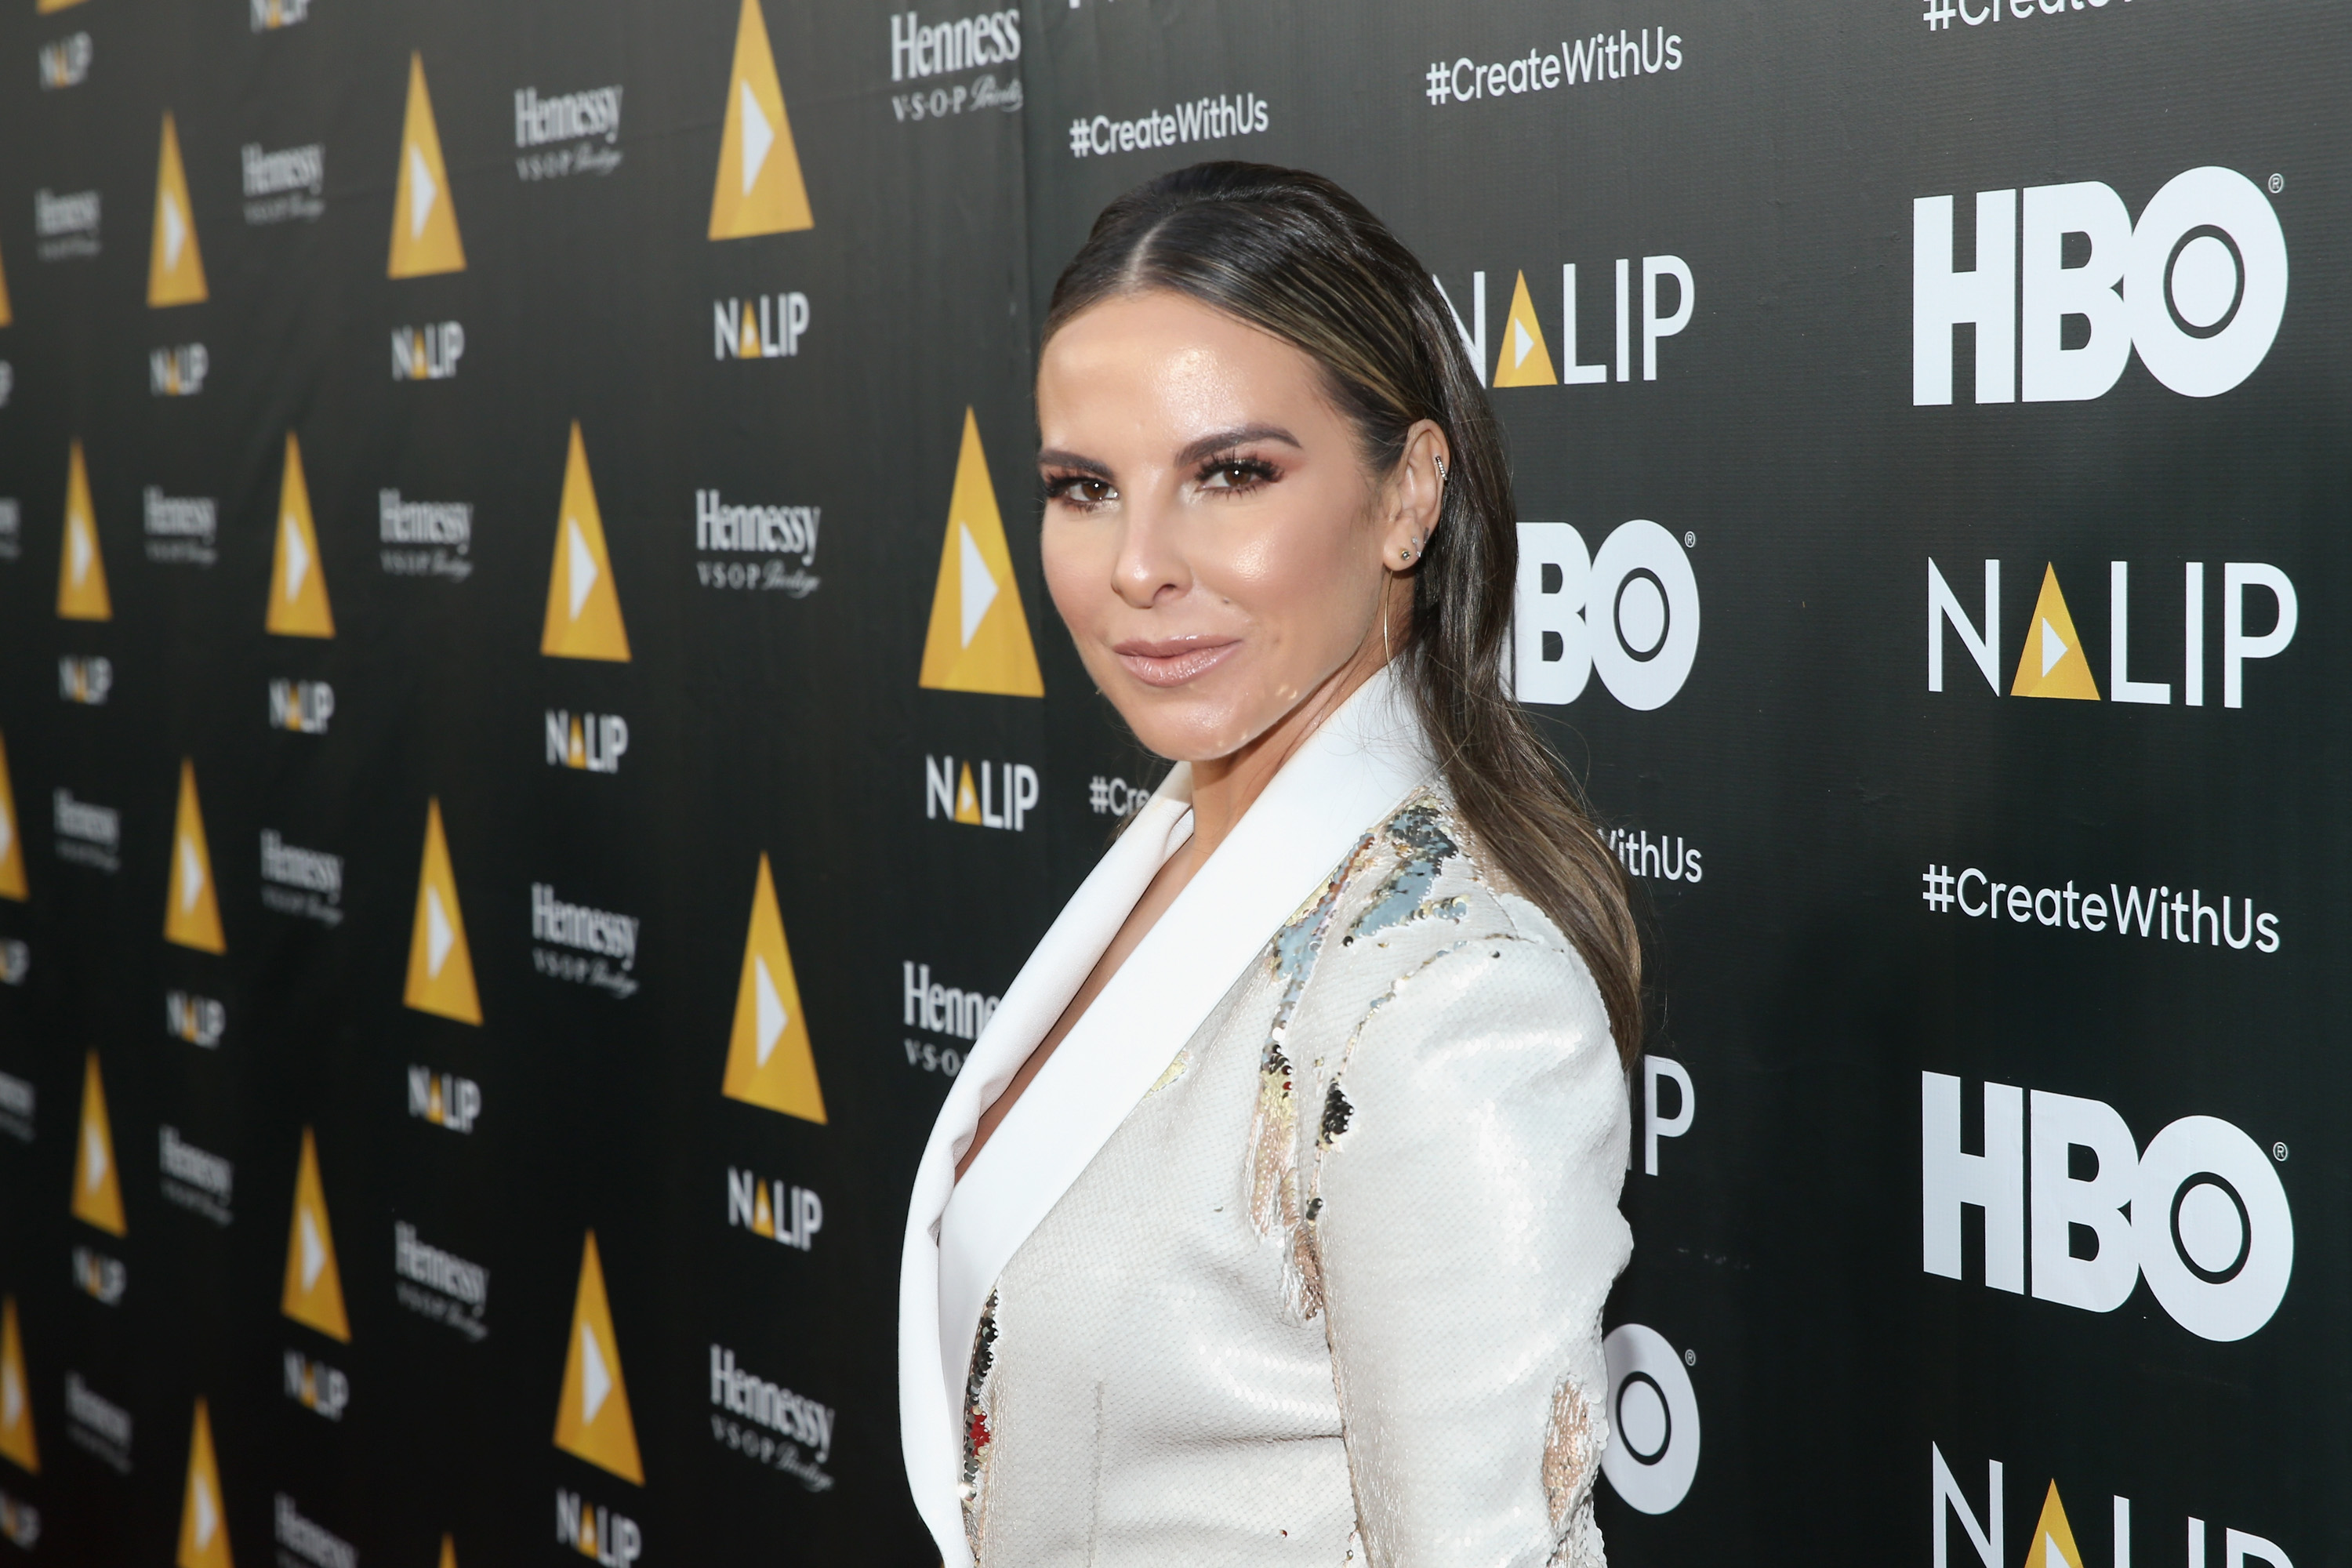 Kate del Castillo Finally Opens Up About 'The Day I Met El Chapo' in Netflix Series